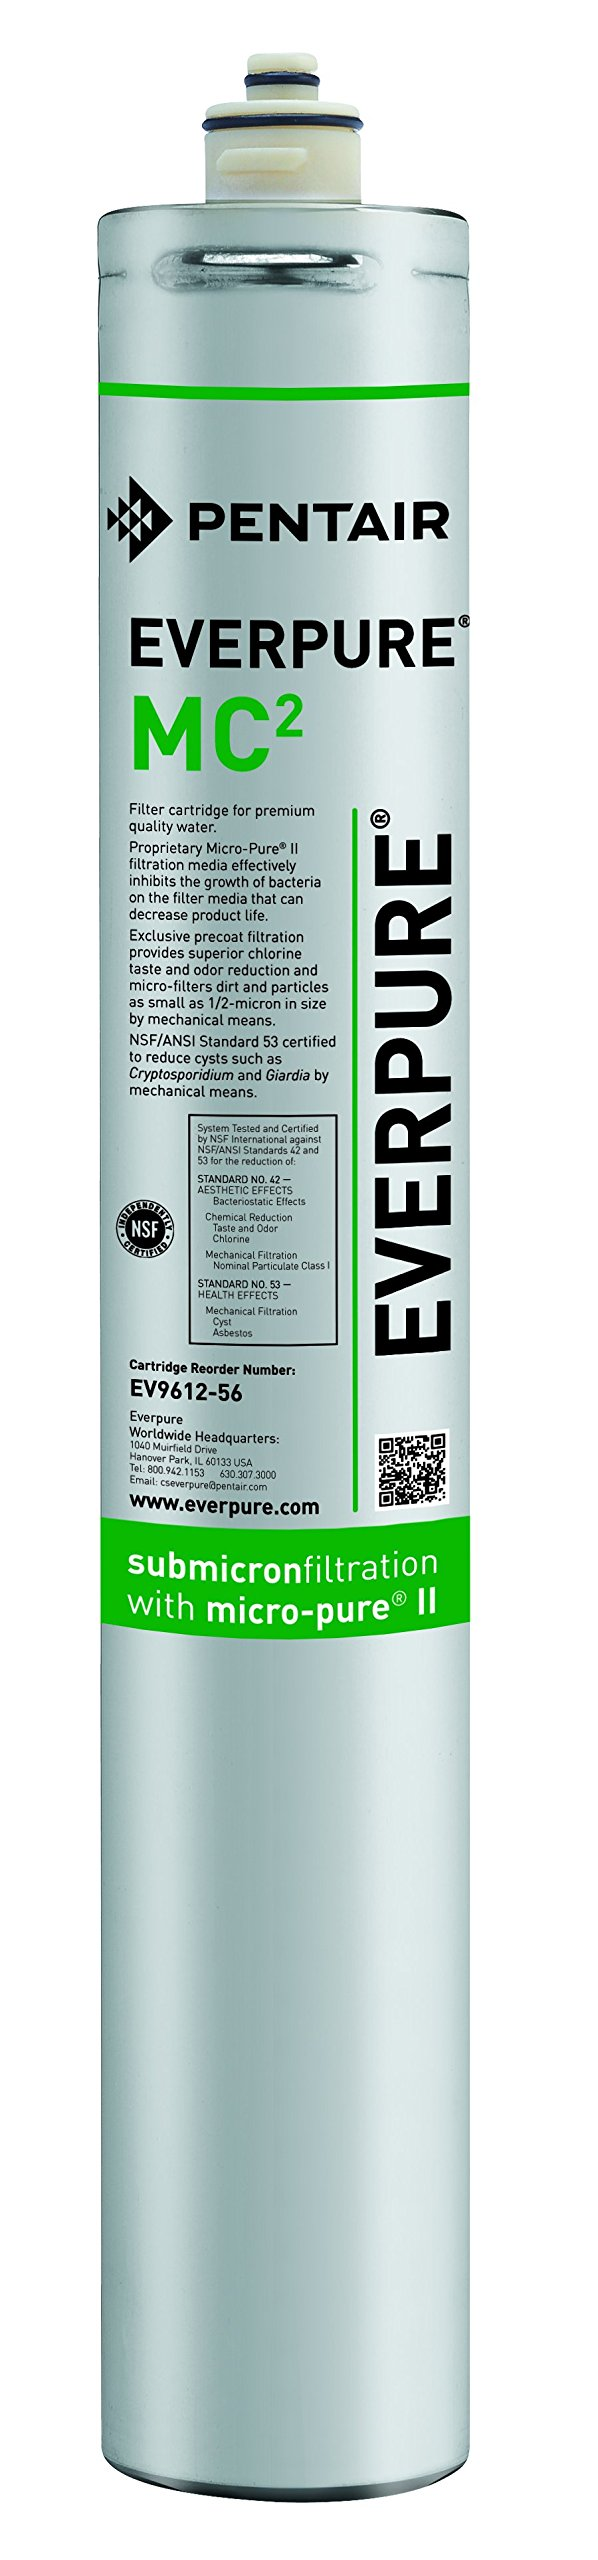 Everpure EV9612-56 MC2 Filter Cartridge by Everpure